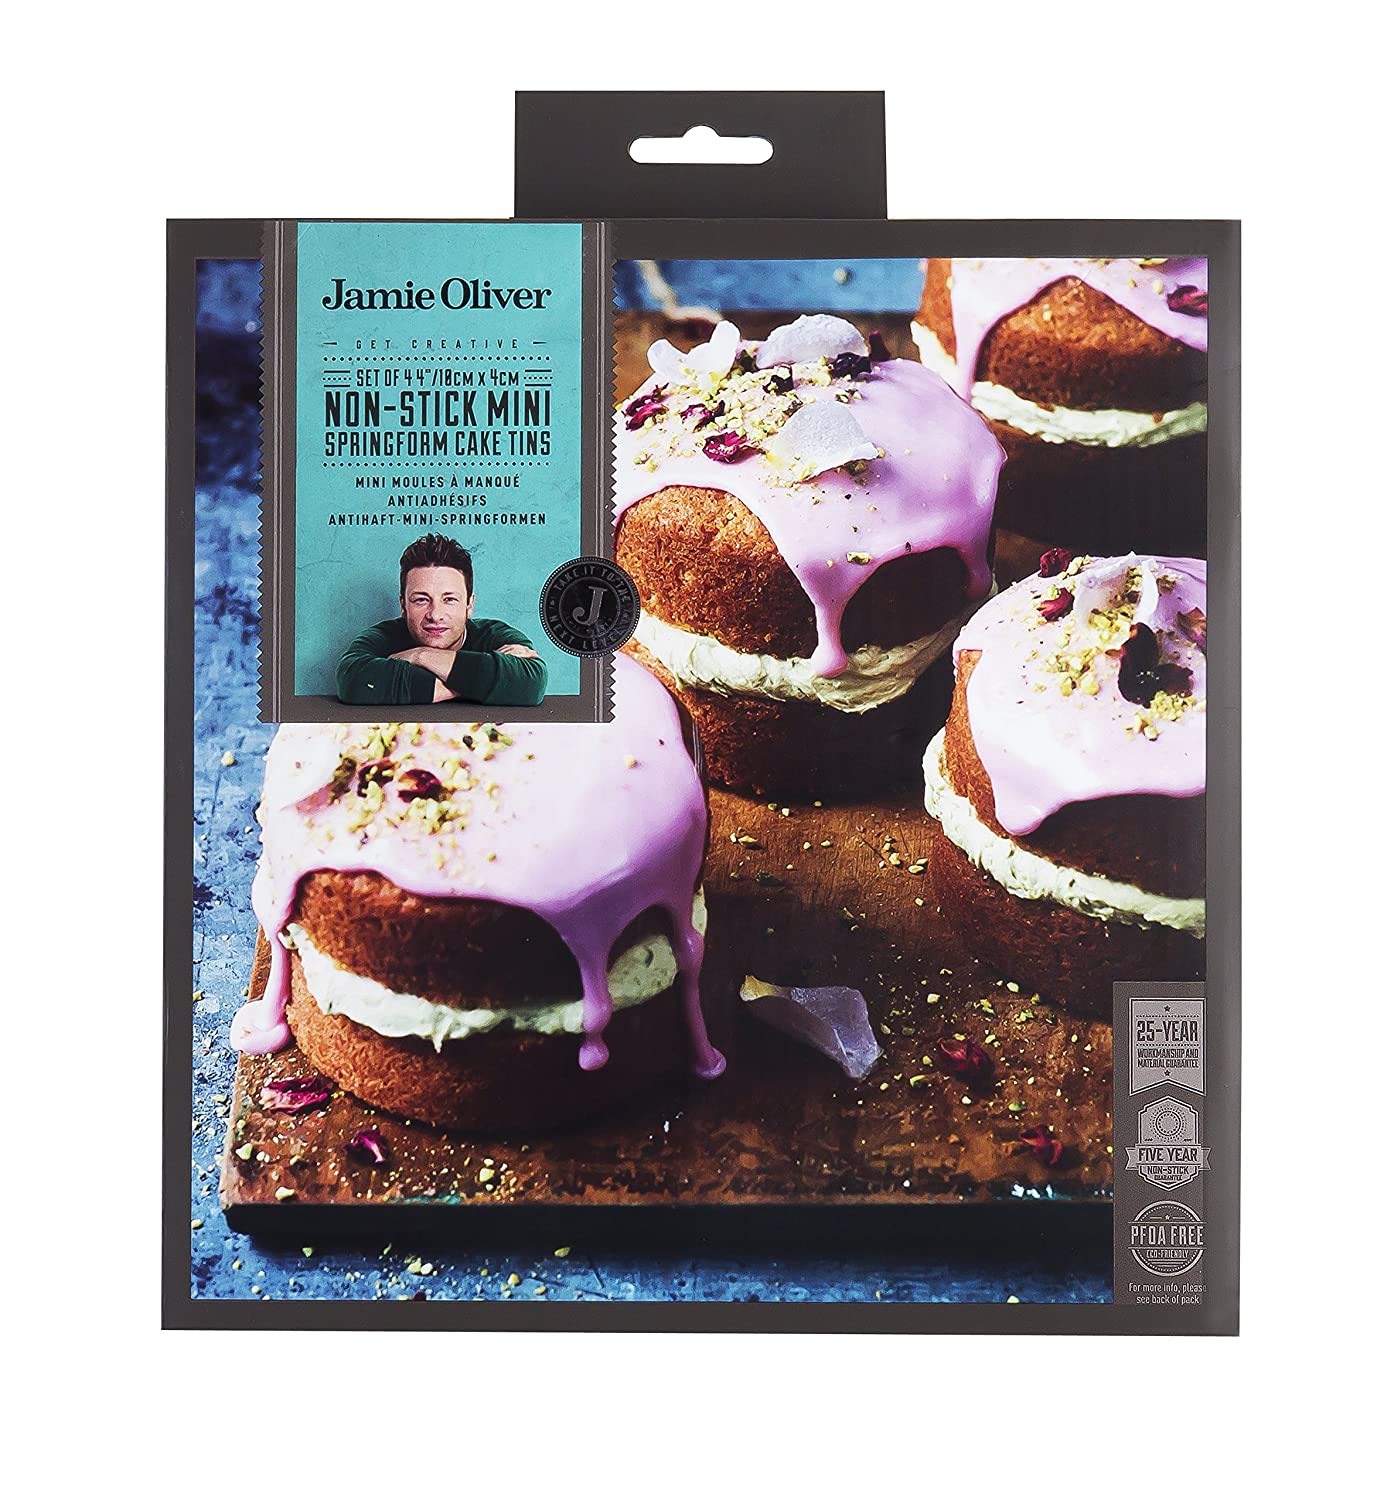 Amazon.com: Jamie Oliver Non-Stick Mini Springform Round Cake Tin - 10 cm, Harbour Blue, Set of 4 by Jamie Oliver: Paintings